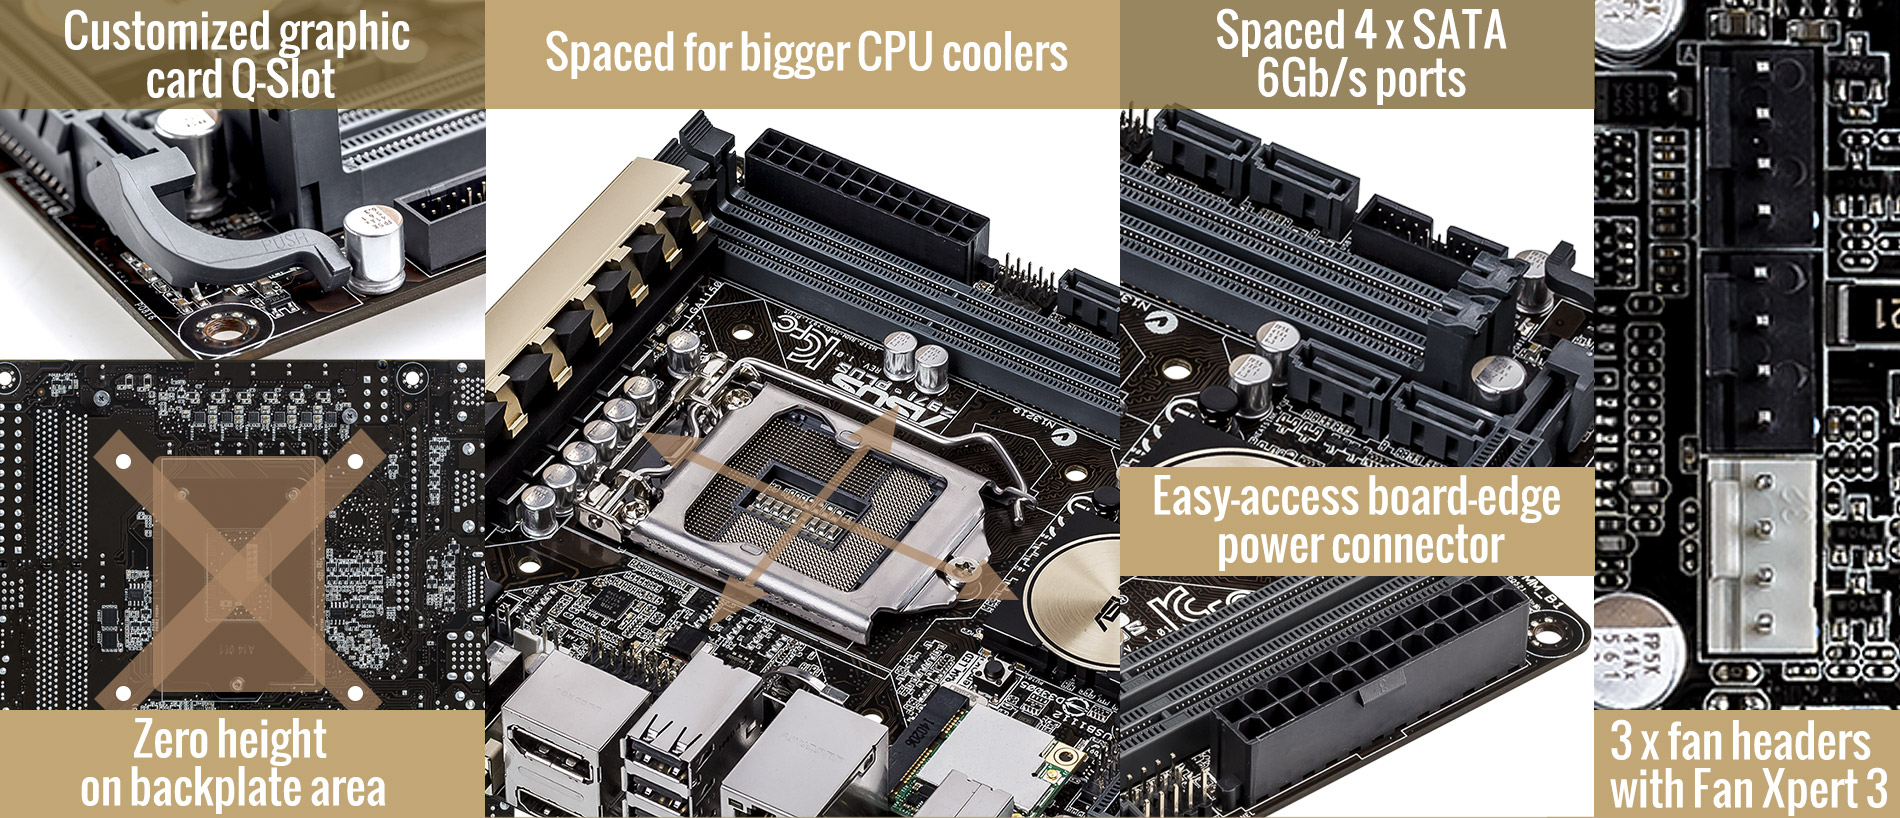 H97i Plus Motherboards Asus Global Circuit Diagram Of The Power Train A Typical Atx Computer For You This Means Great Expansion Flexibility Extra Storage Connectivity And Graphics Even Large Components Traditionally Considered Only Are